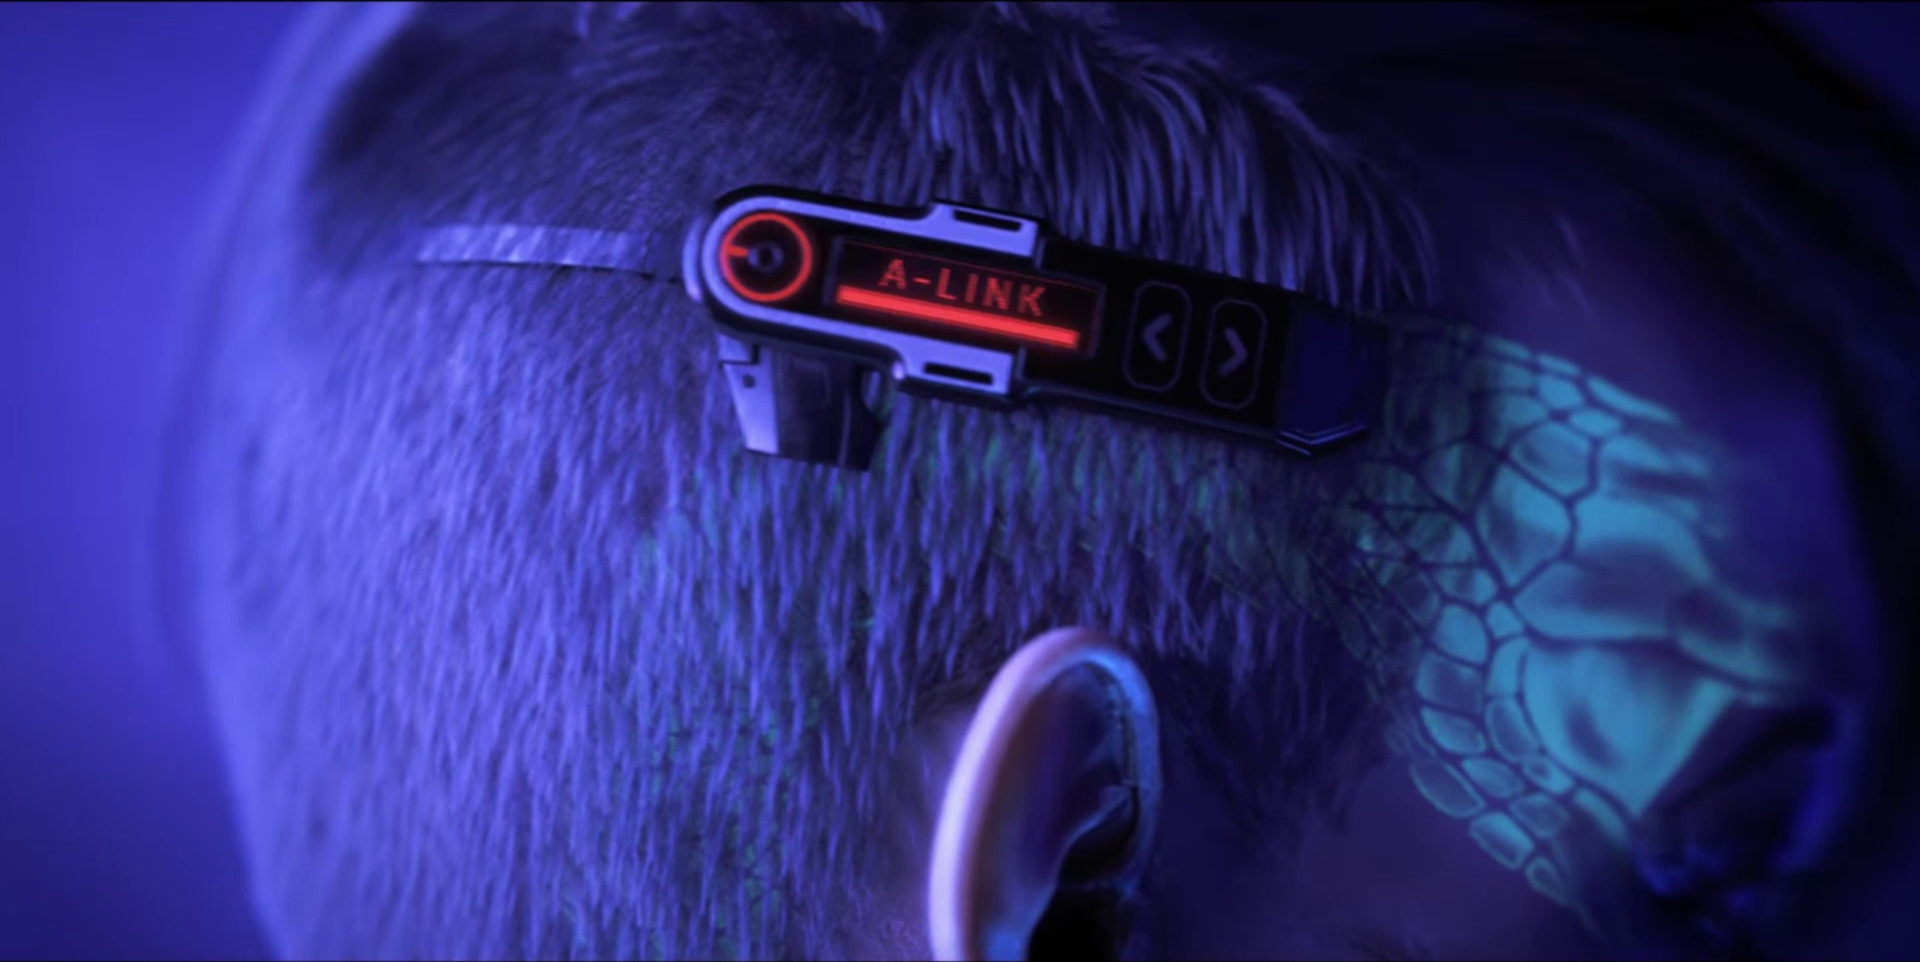 """Sonnie's Edge,""  Love Death + Robots  (Netlfix, 2019), Sonnie's headpiece, now red, typically indicating  off"